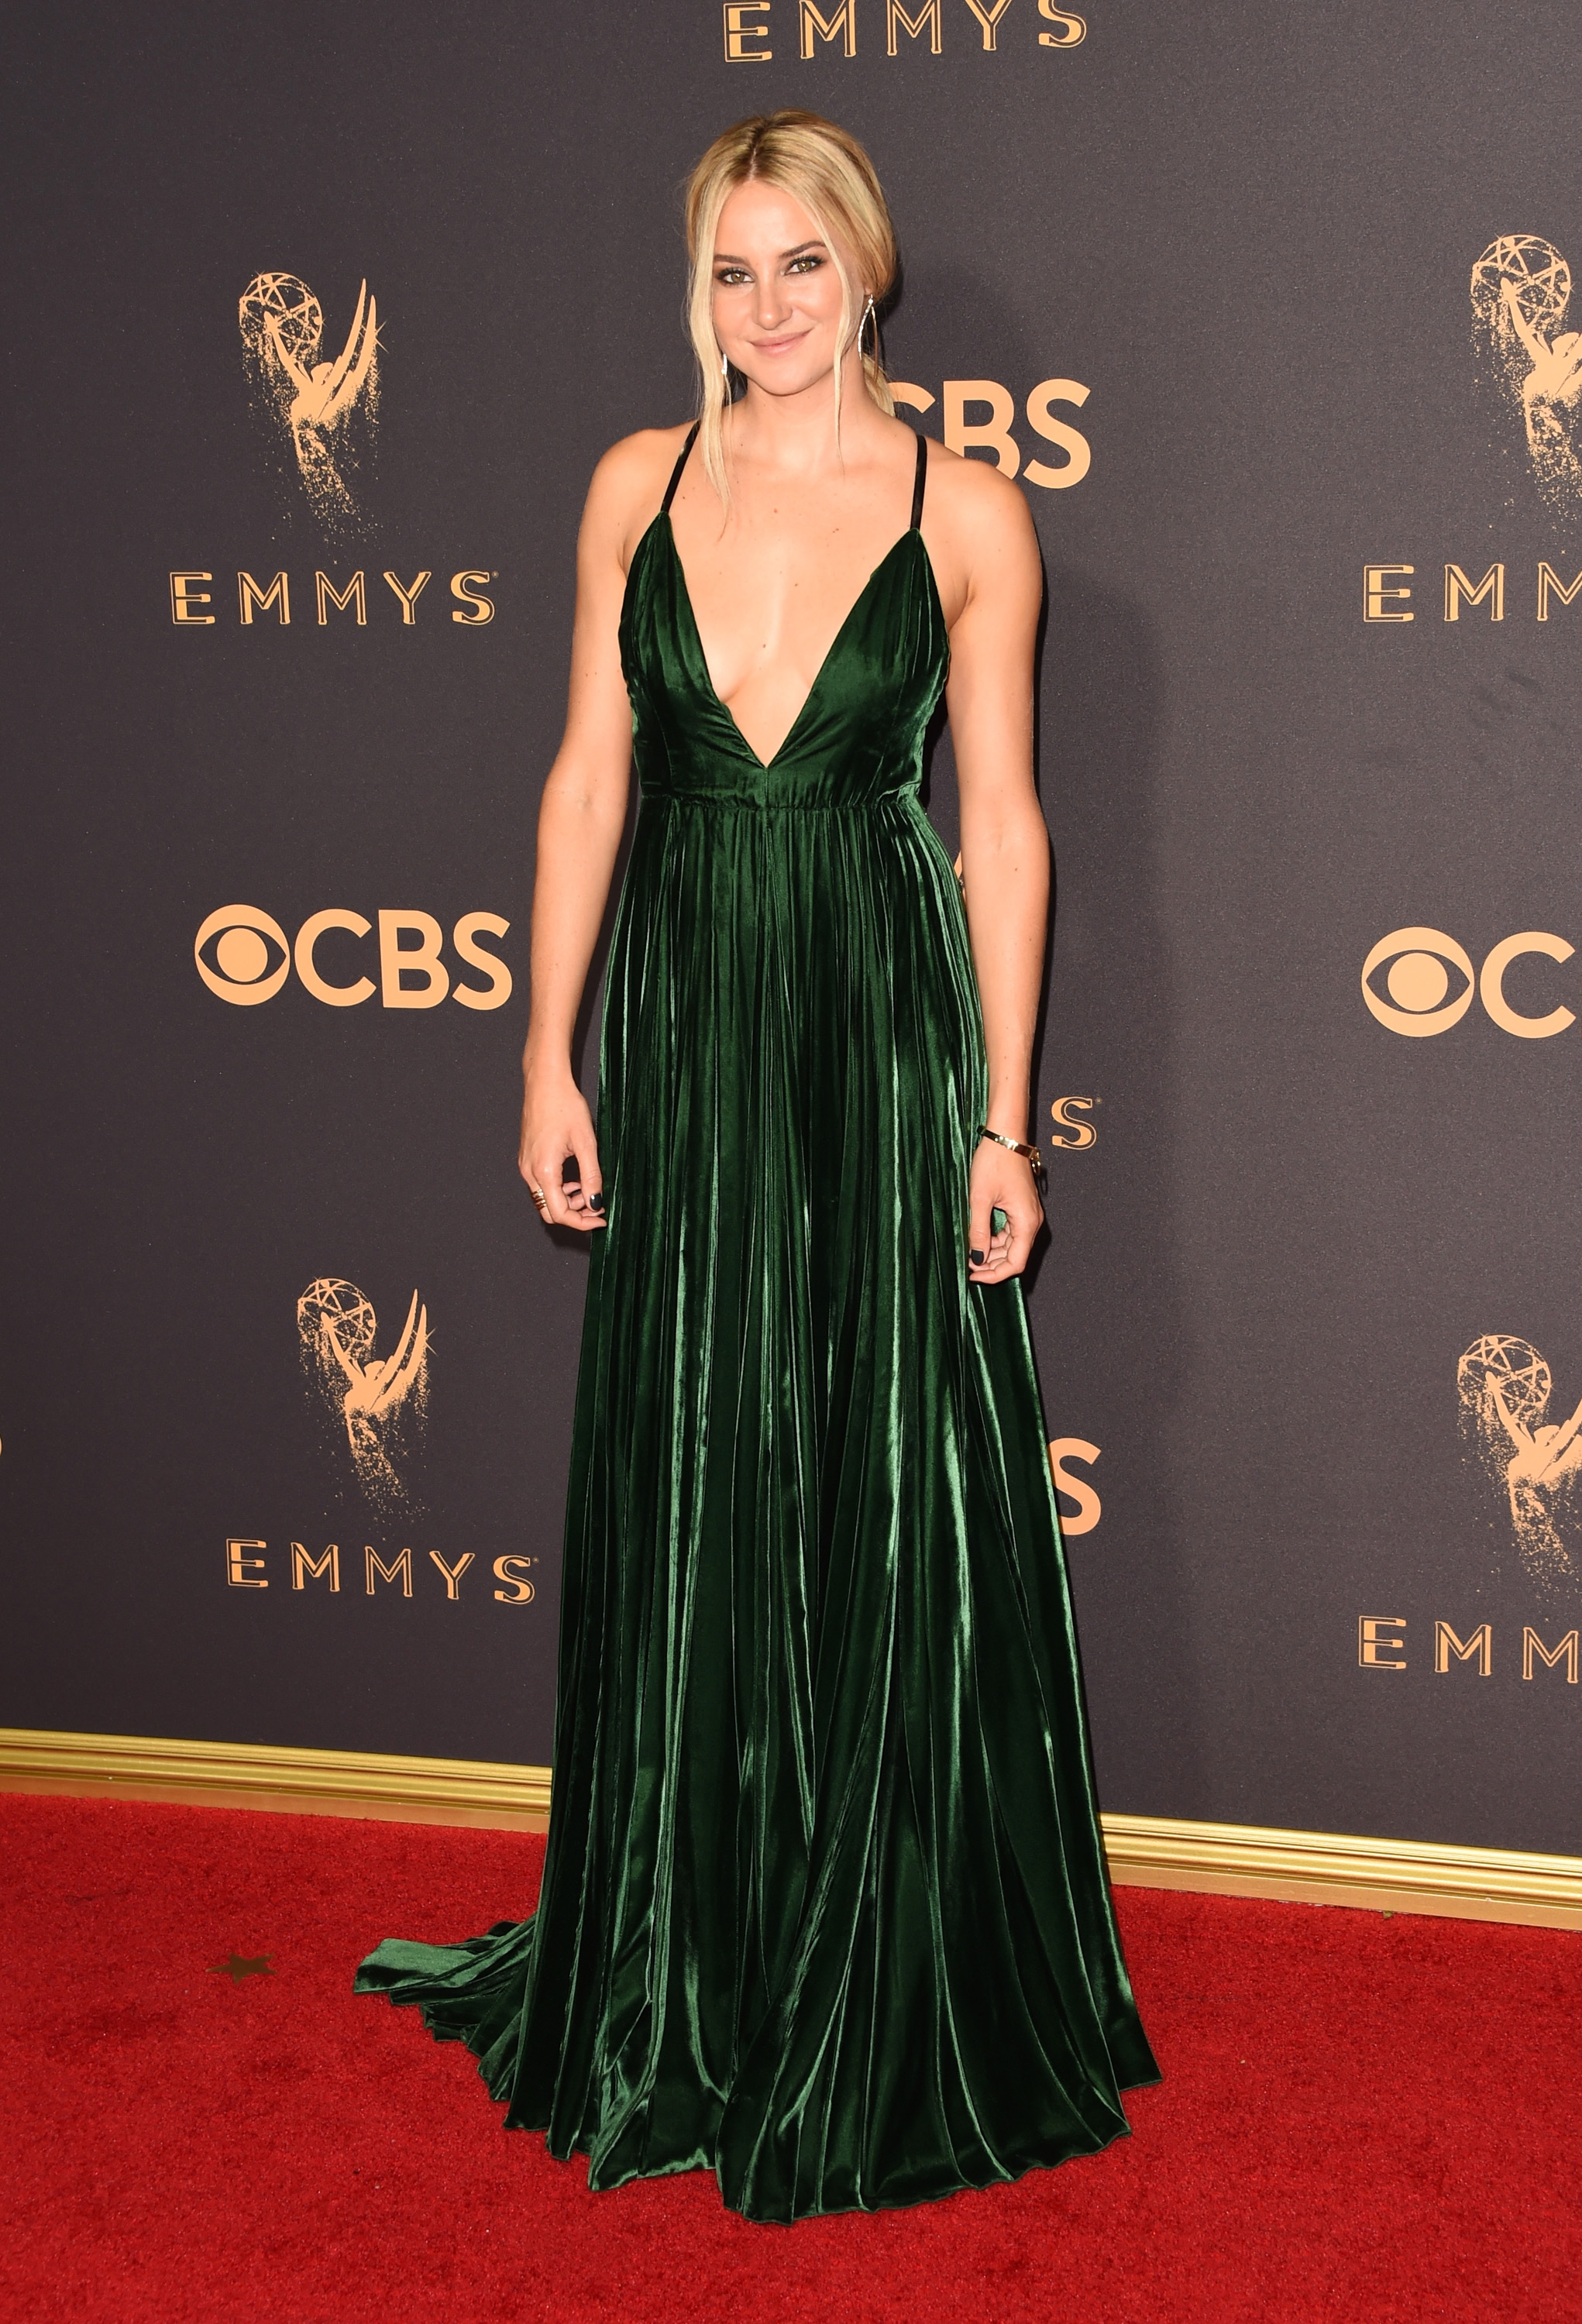 Shailene Woodley Emmys Red Carpet 2017